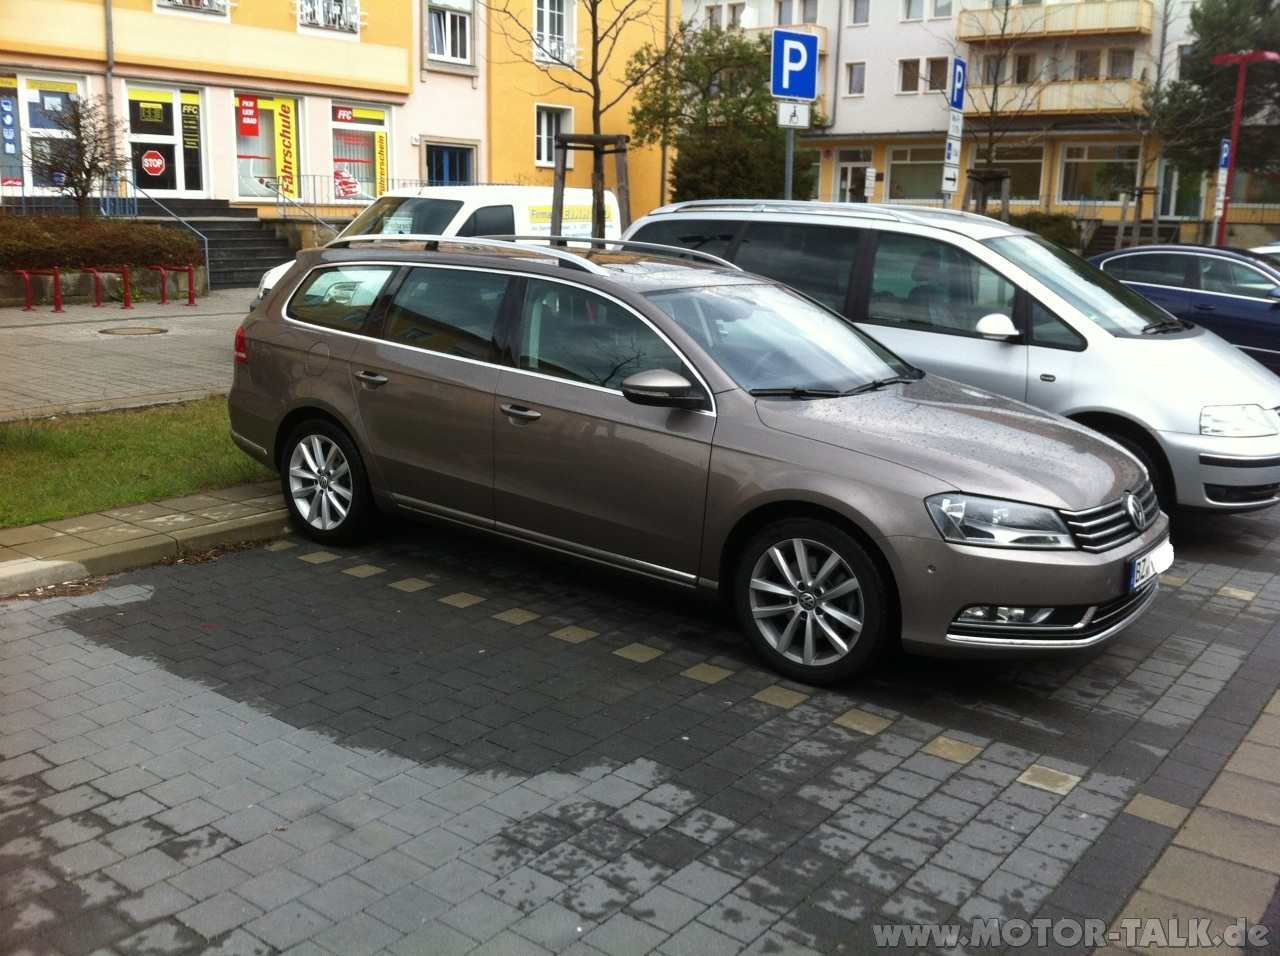 vw passat b7 variant highline vw passat 3c b7 2 0 tdi. Black Bedroom Furniture Sets. Home Design Ideas